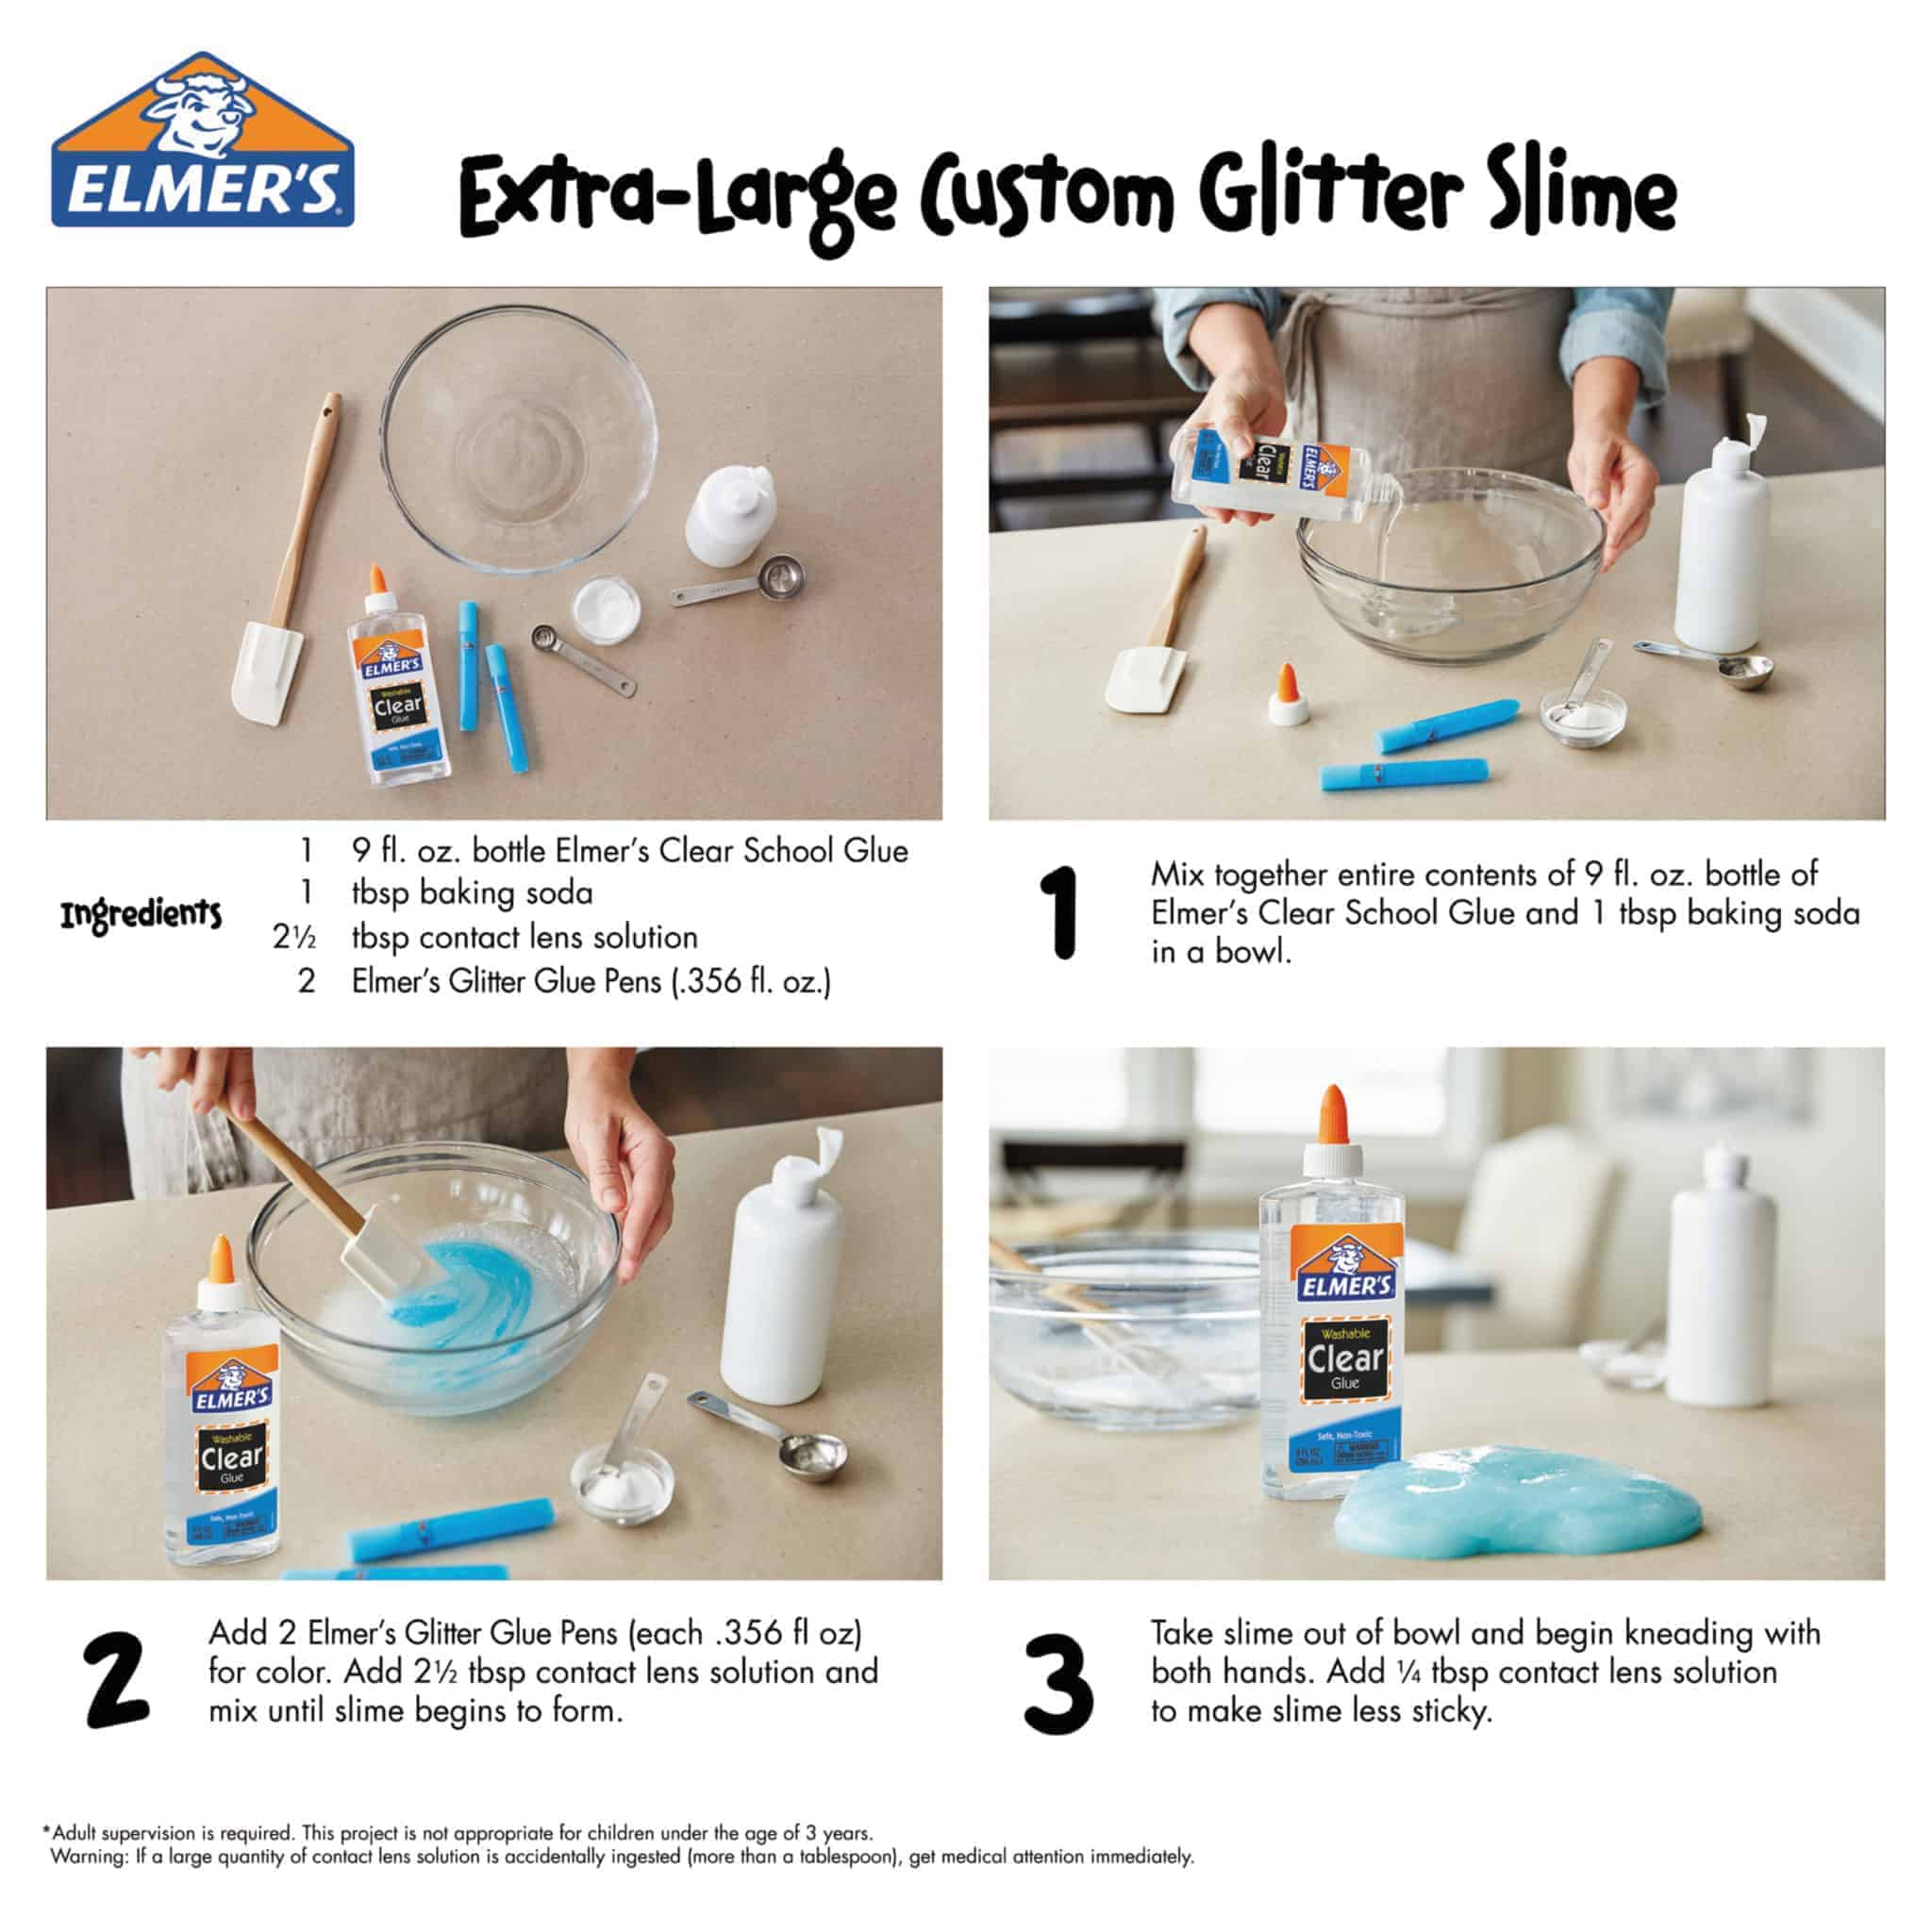 How to make slime with elmers clear glue and baking soda